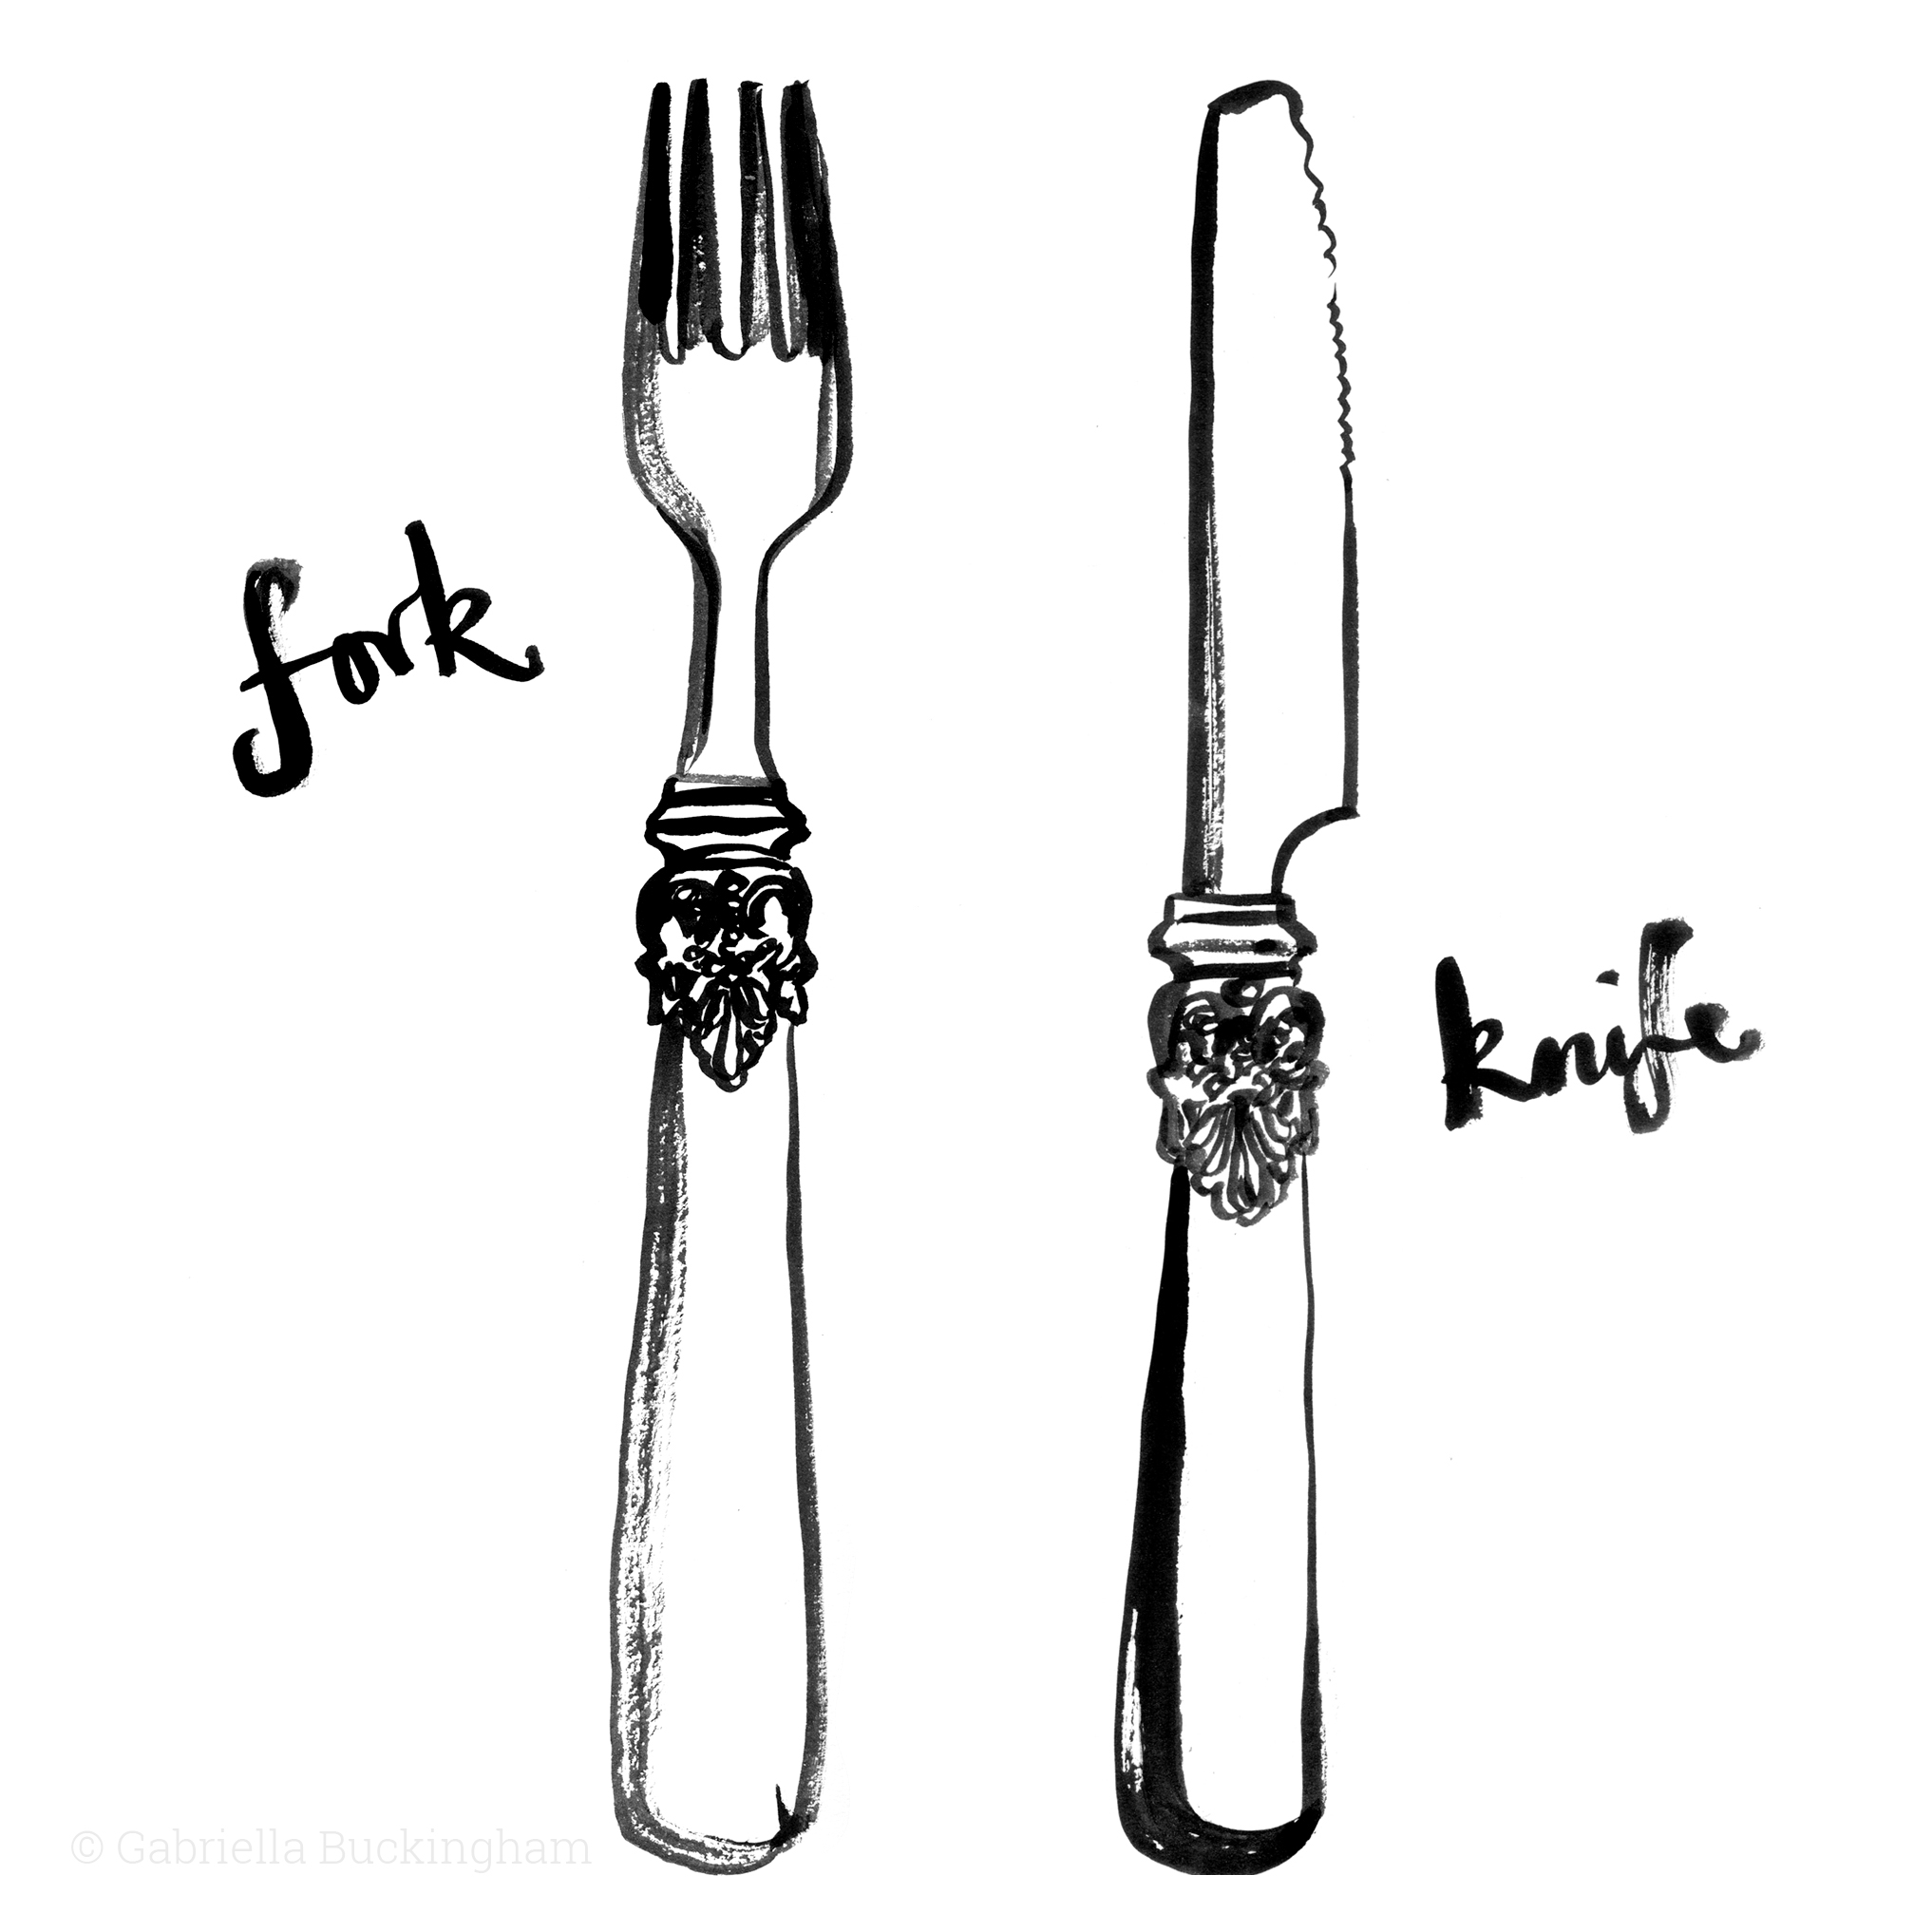 knife-and-fork-ink-illustrations-by-gabriella-buckingham.jpg